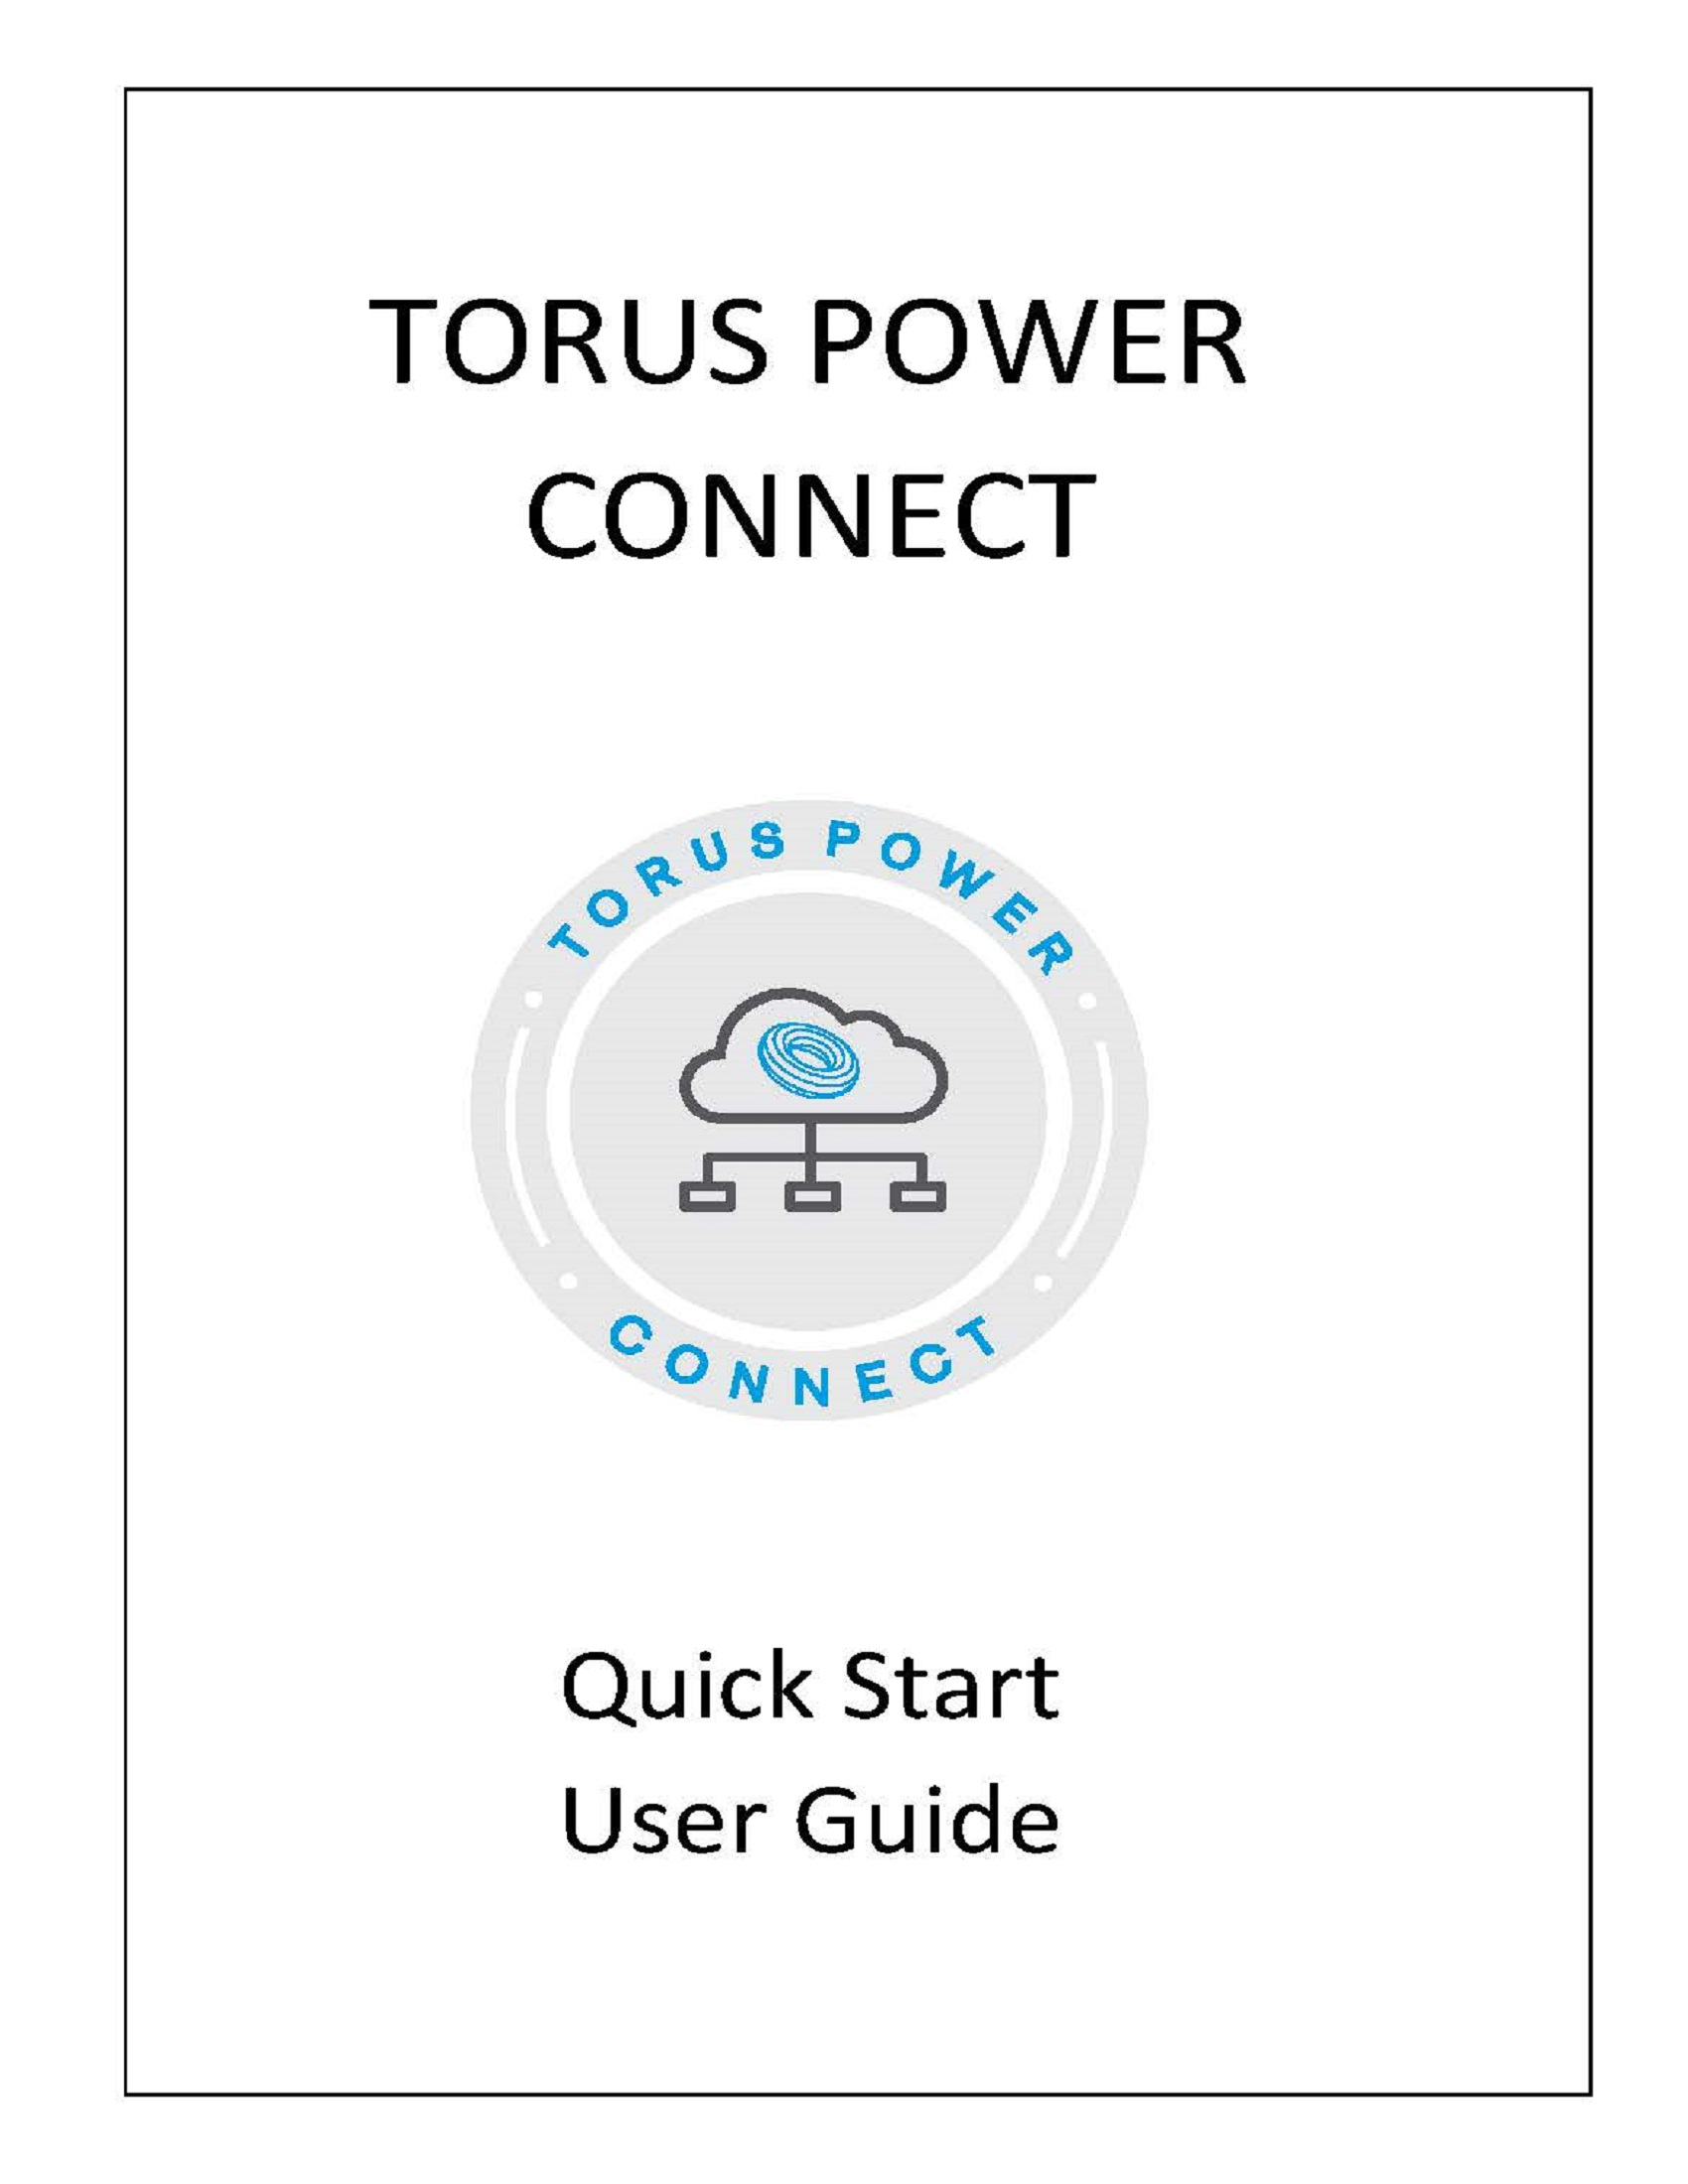 Quick Start Torus Power Connect